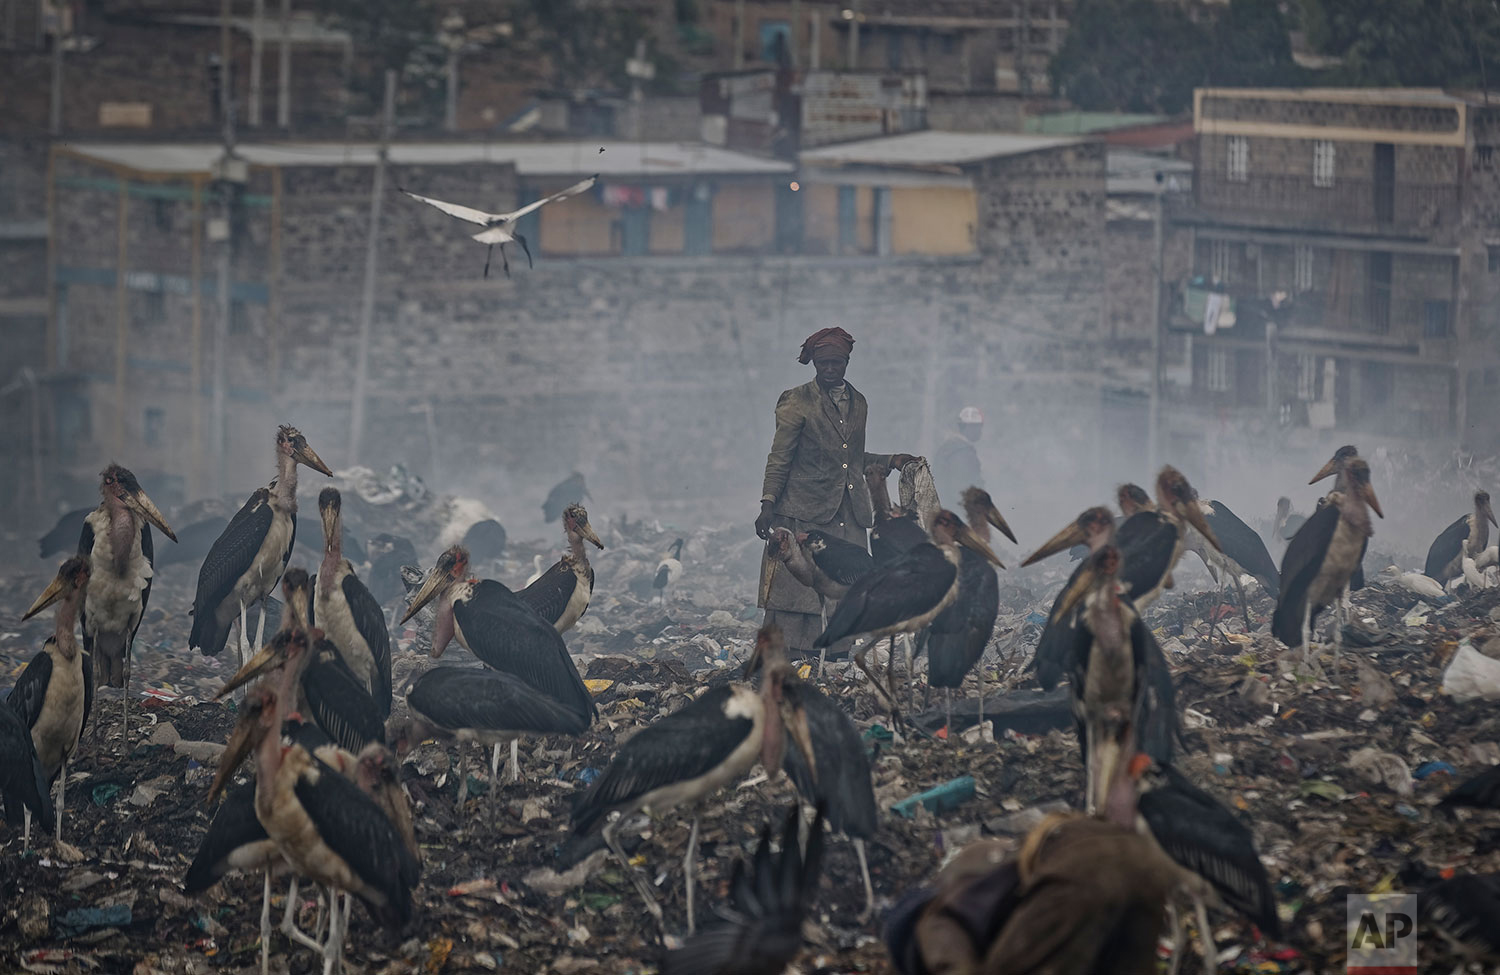 In this Wednesday, Dec. 5, 2018 photo, a woman who scavenges recyclable materials from garbage for a living is seen through a cloud of smoke from burning trash, surrounded by Marabou storks who feed on the garbage, at the dump in the Dandora slum of Nairobi, Kenya. (AP Photo/Ben Curtis)